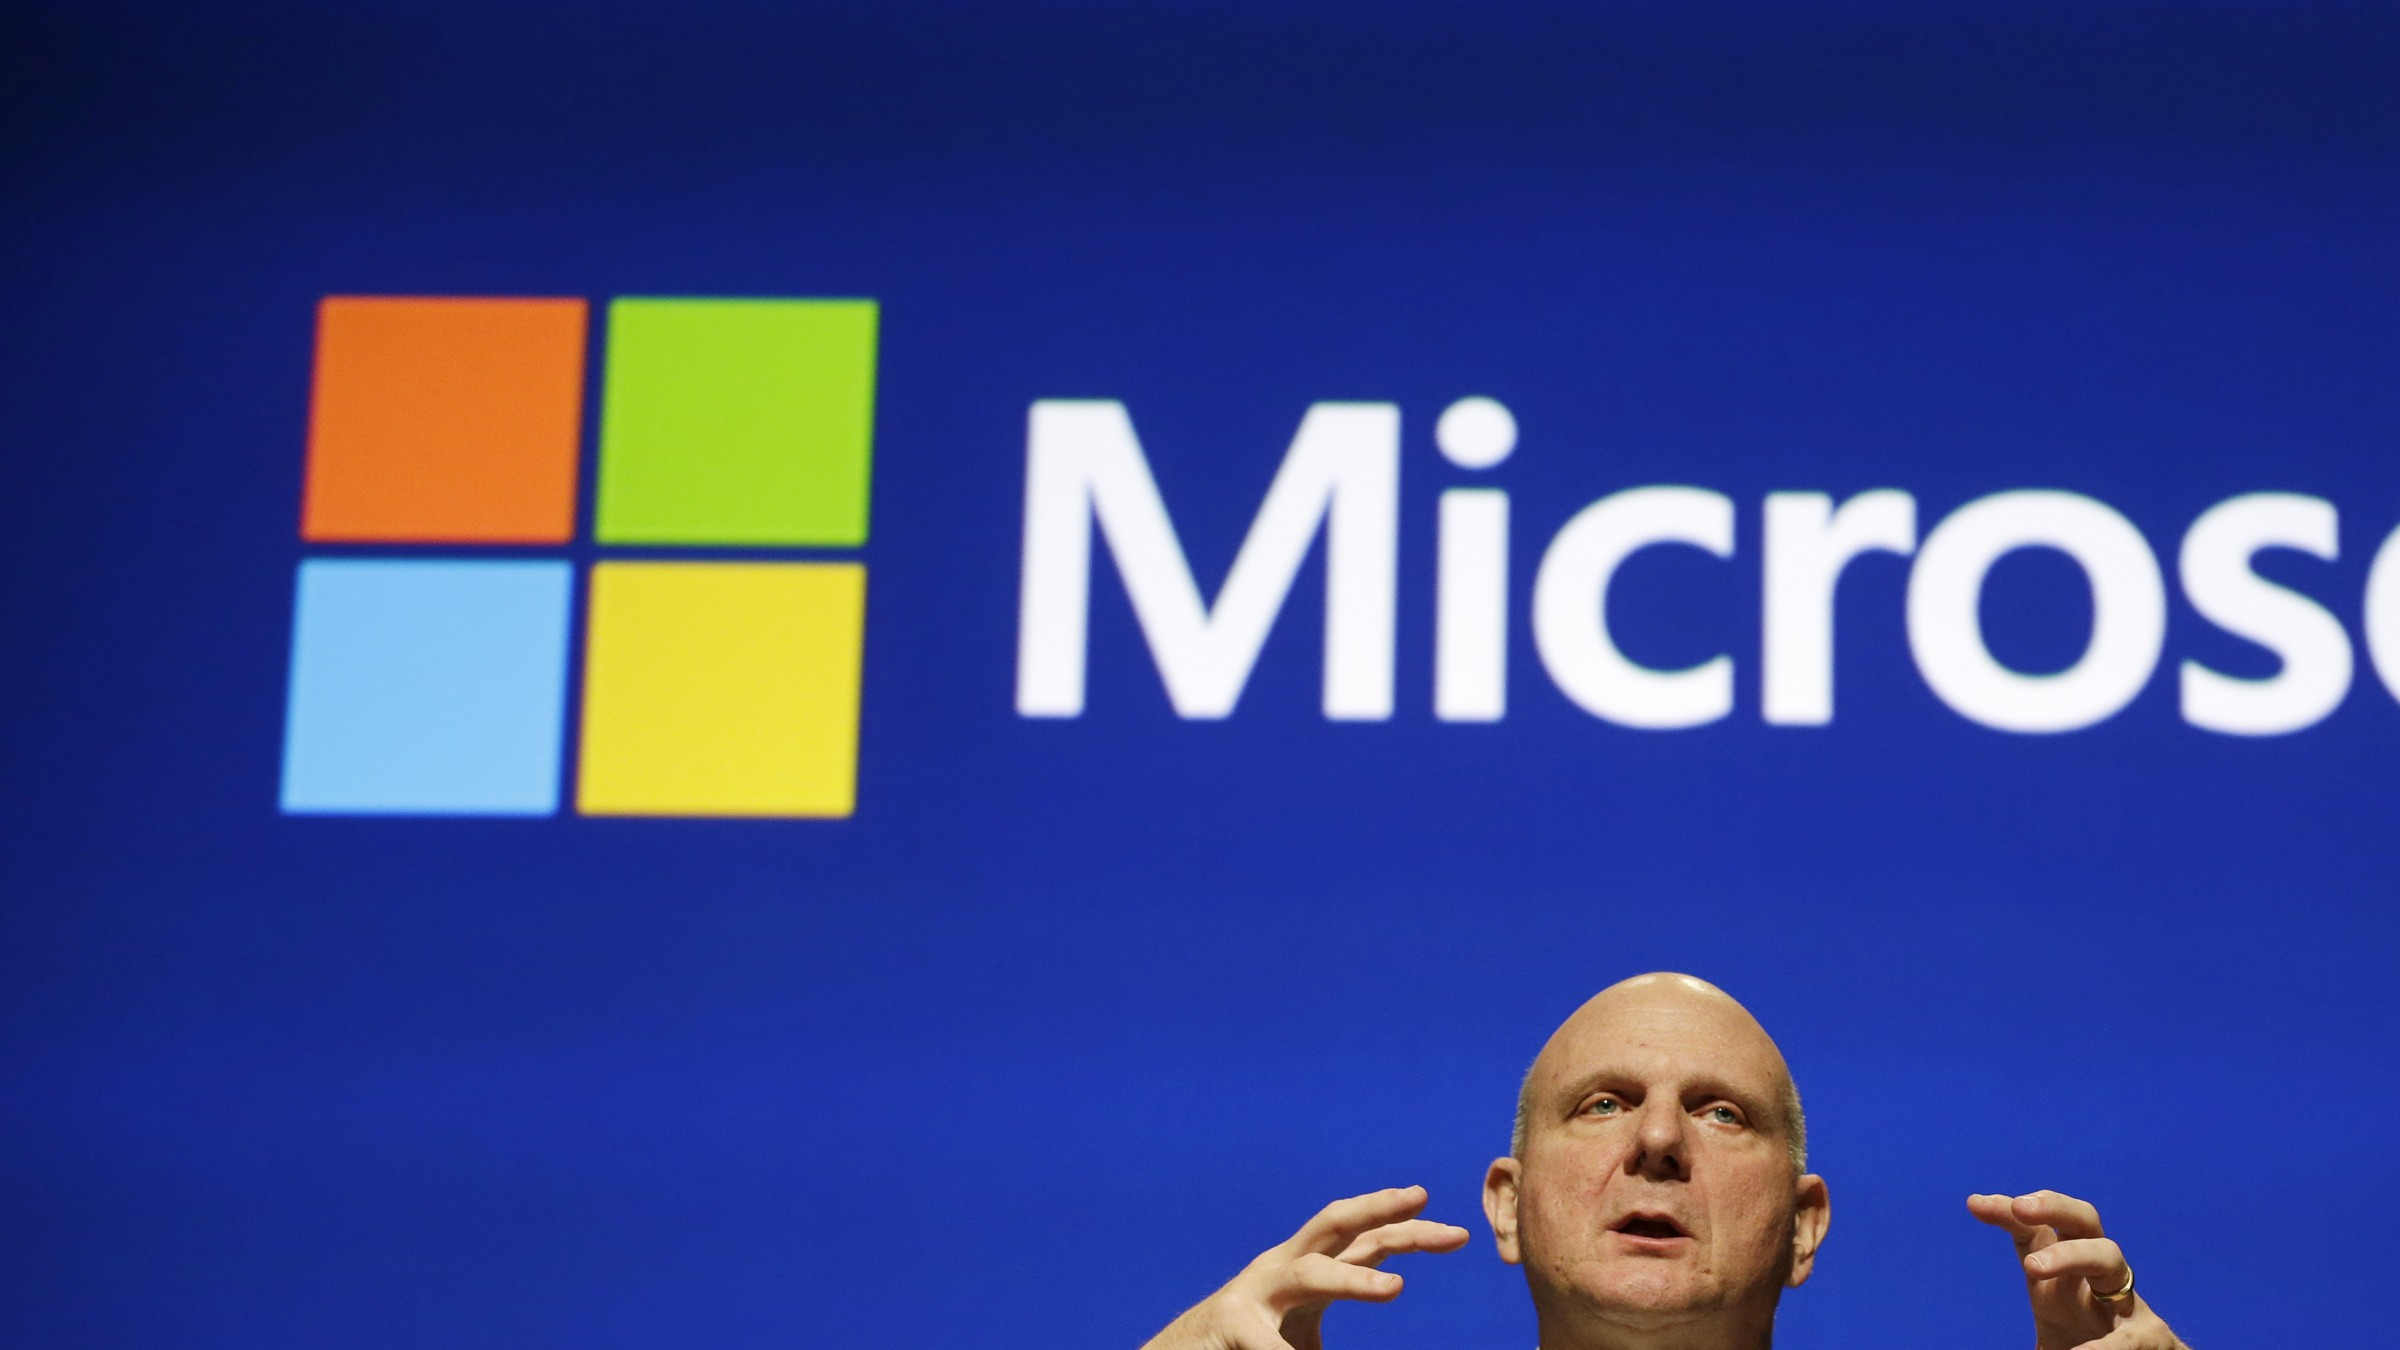 Microsoft CEO Steve Ballmer speaks at the company's annual shareholders meeting Tuesday, Nov. 19, 2013, in Bellevue, Wash. (AP Photo/Elaine Thompson)